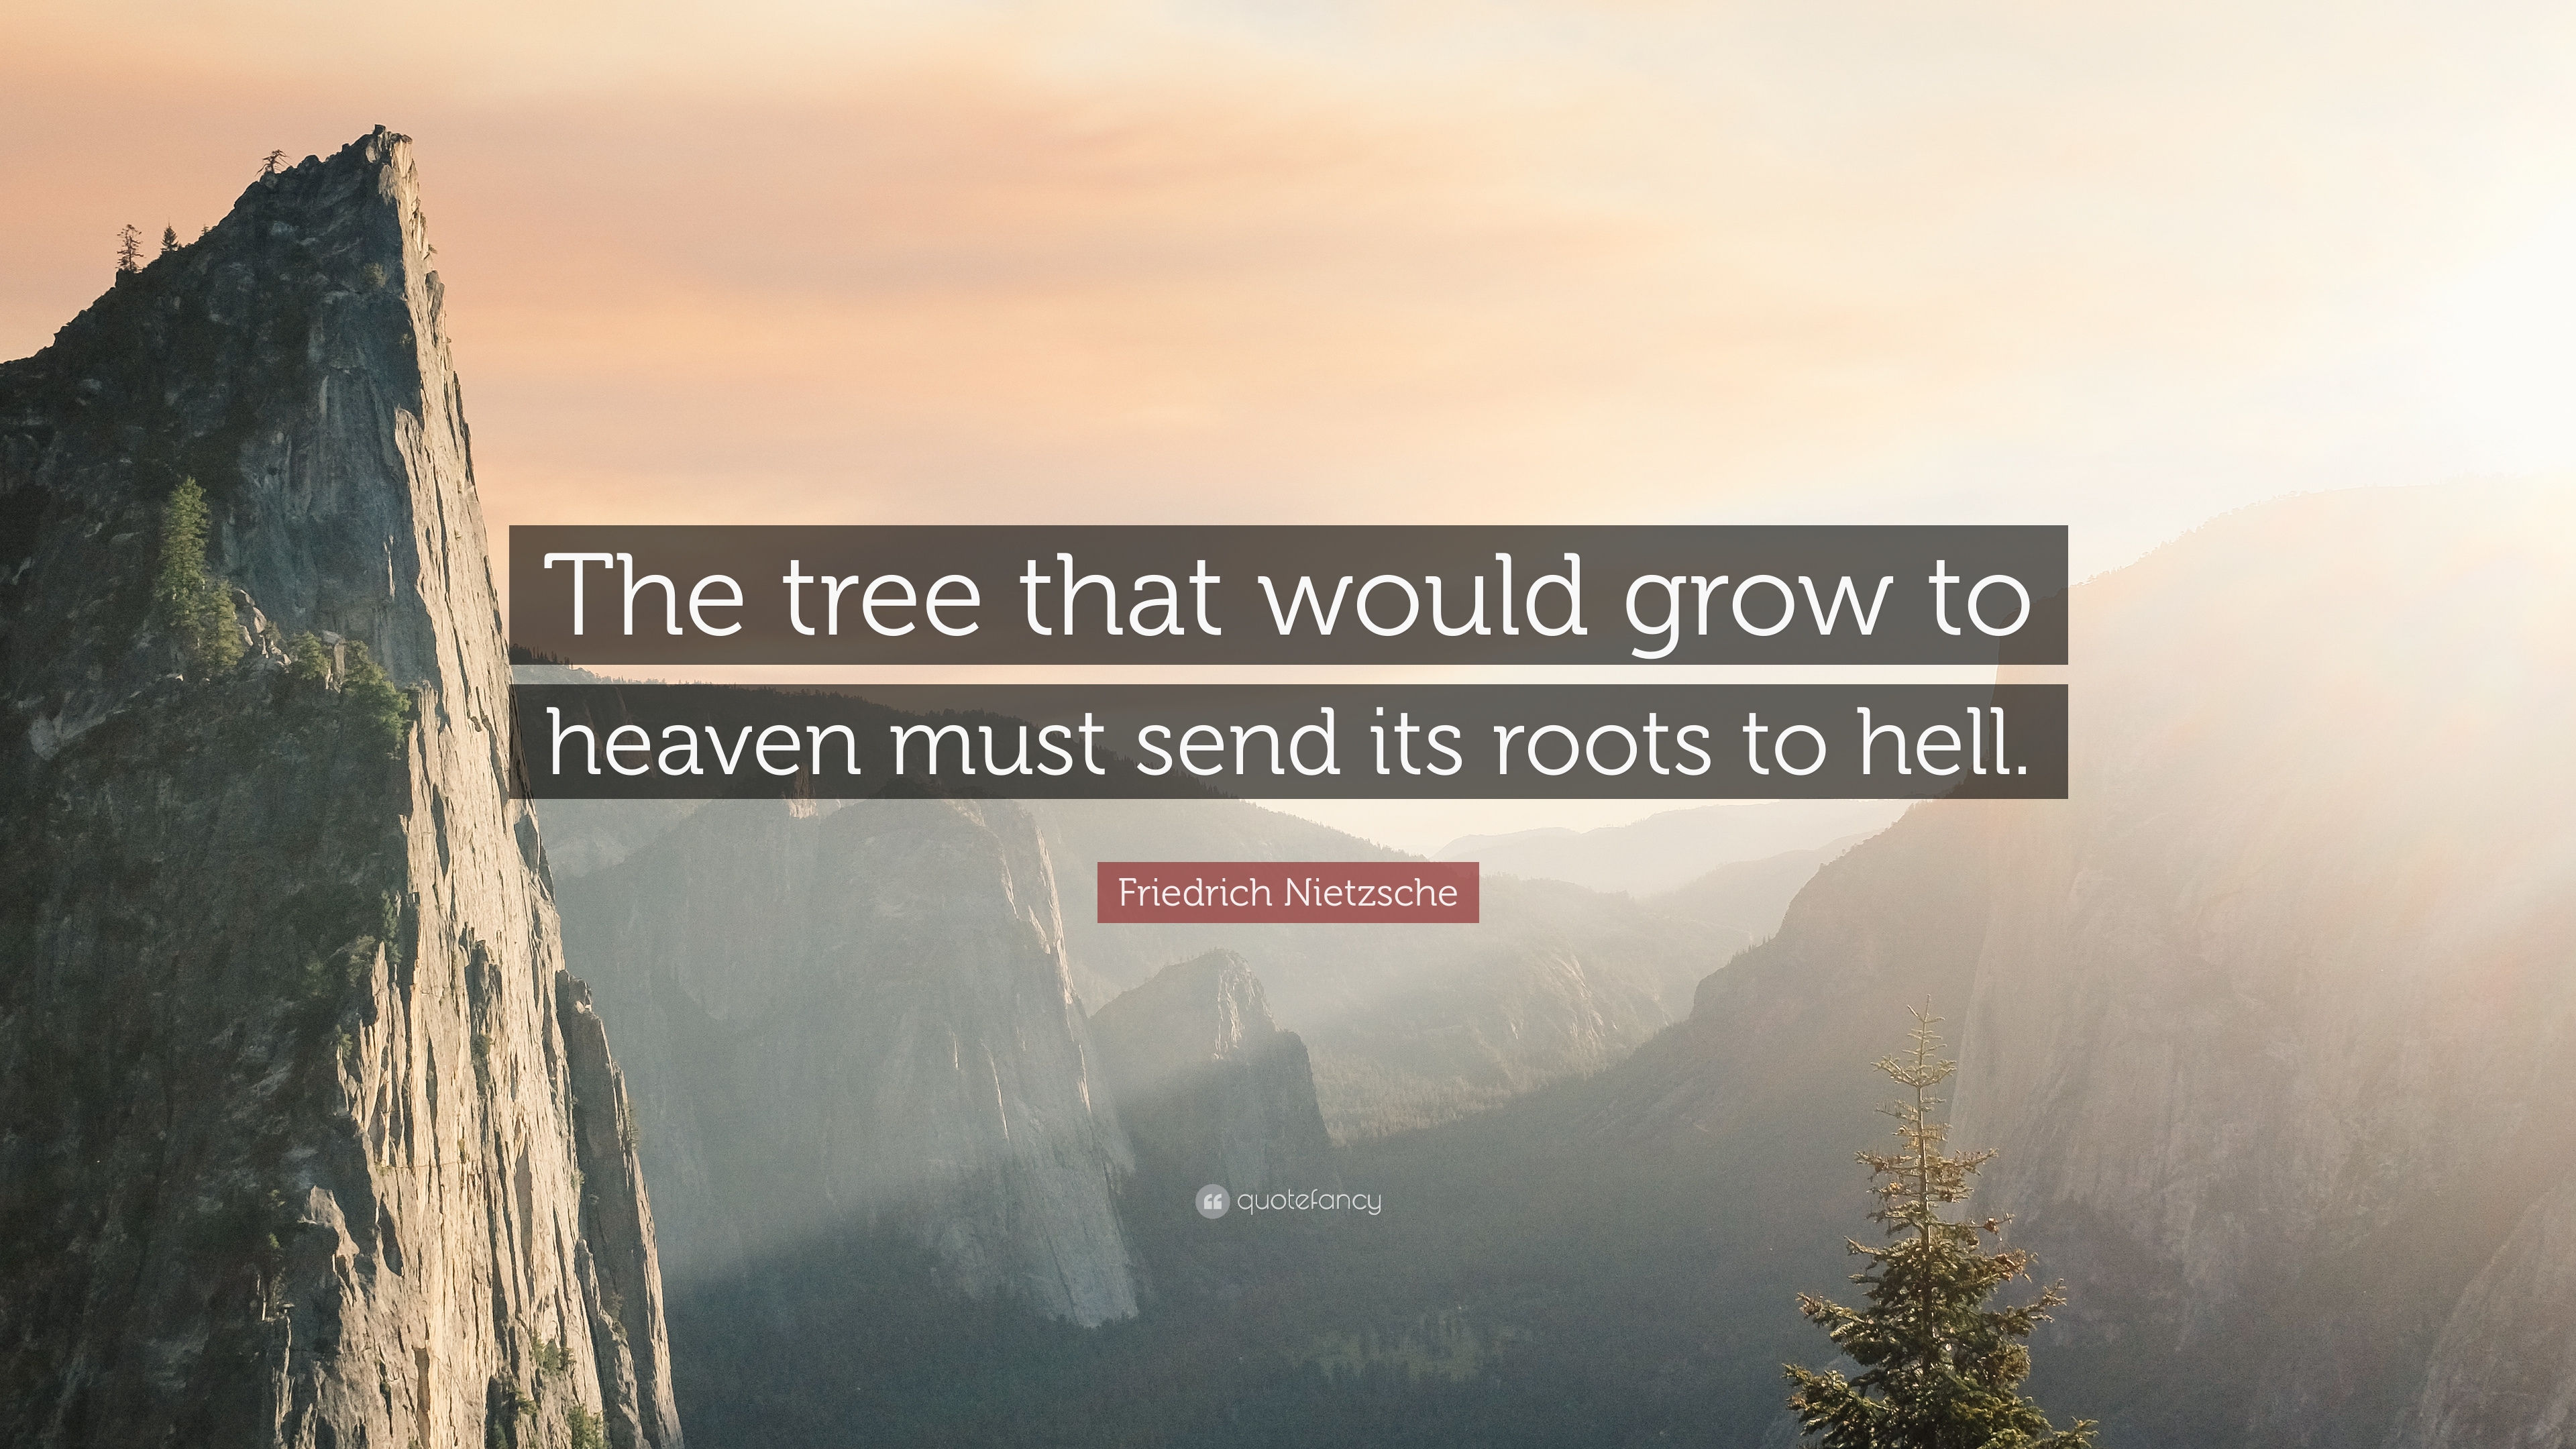 Friedrich Nietzsche Quote The Tree That Would Grow To Heaven Must